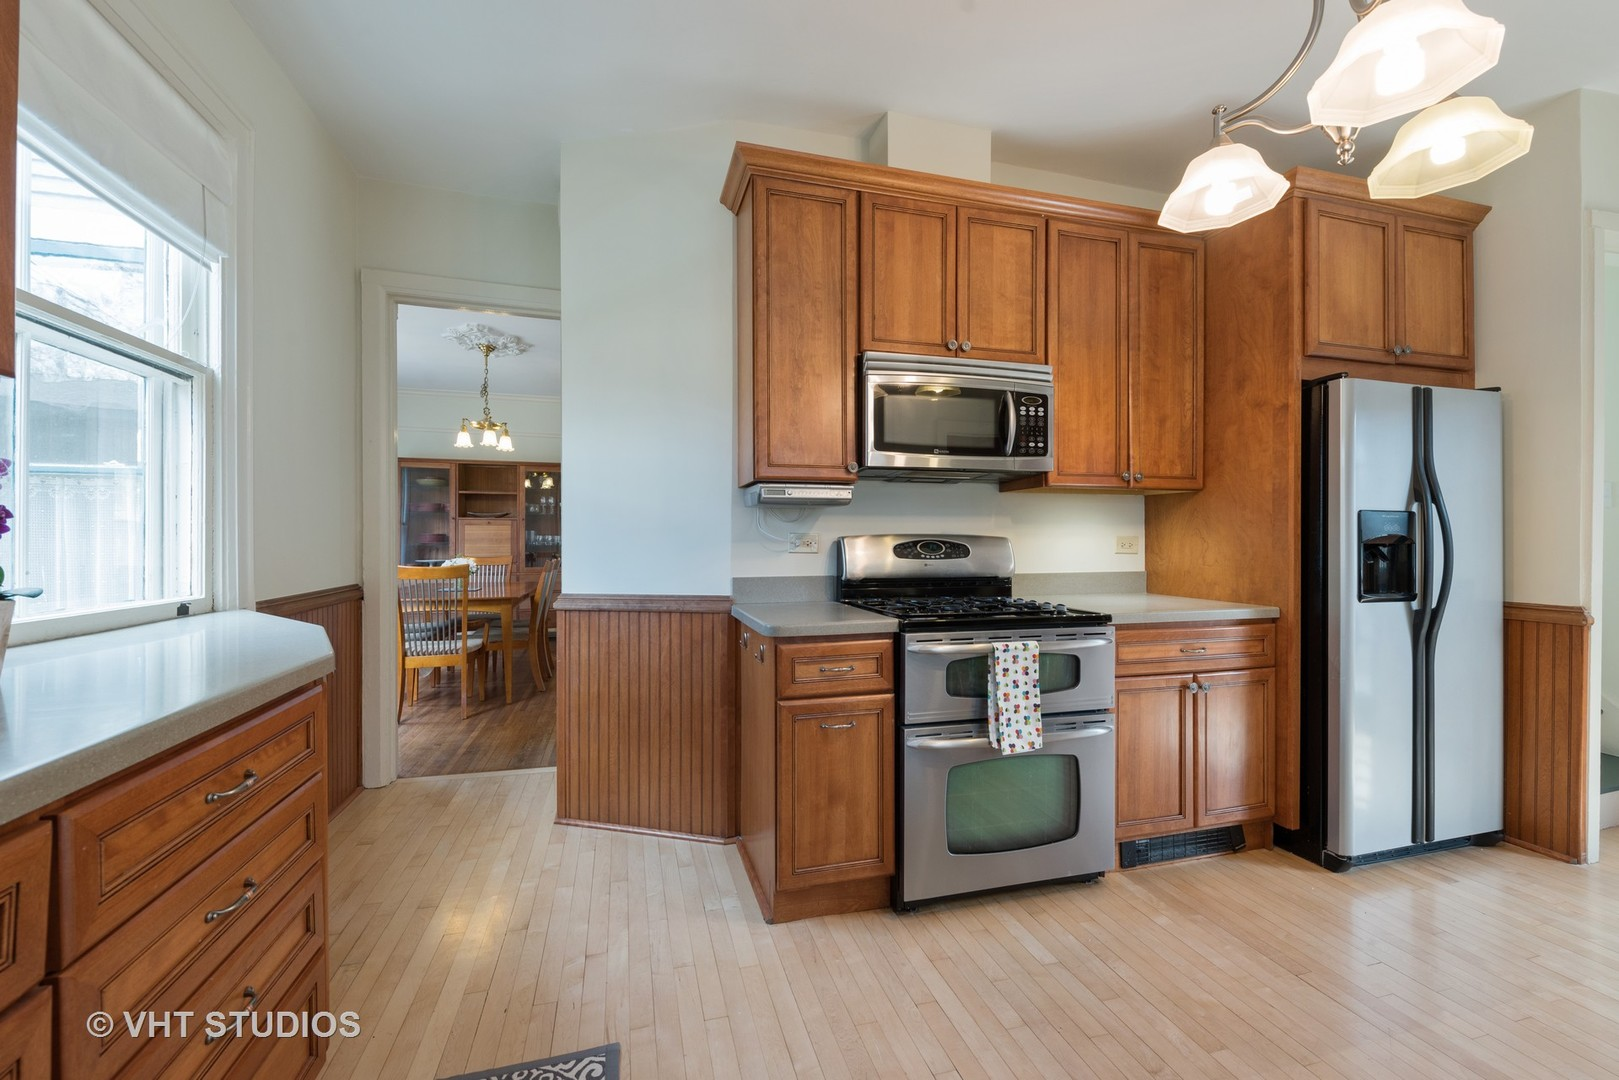 2030 Maple, Evanston, Illinois, 60201